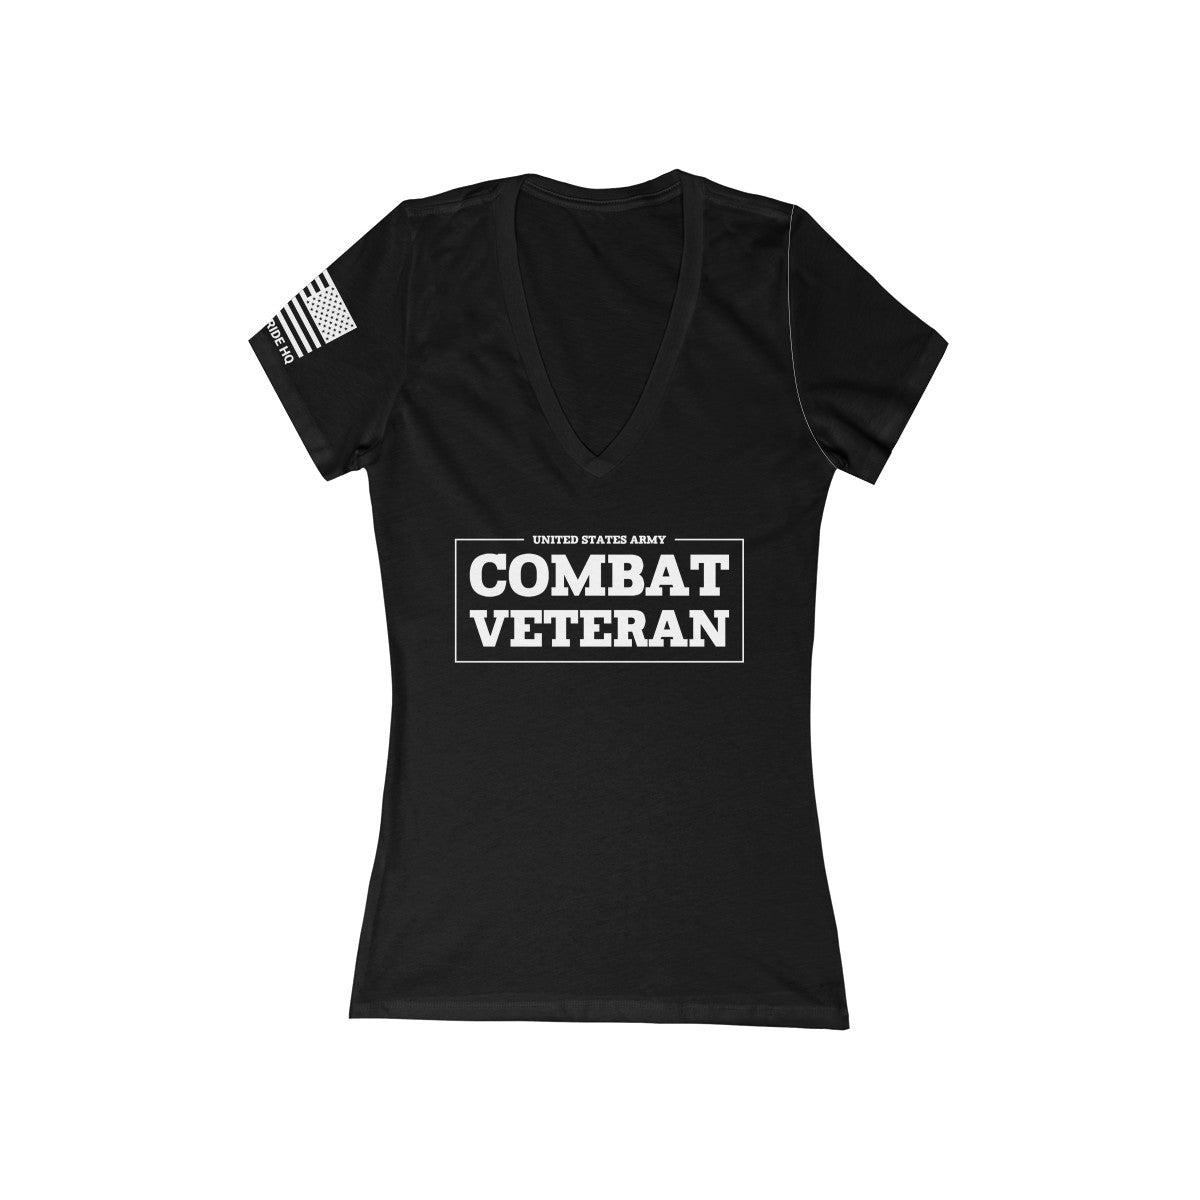 United States Army Combat Veteran Women's V-Neck Tee